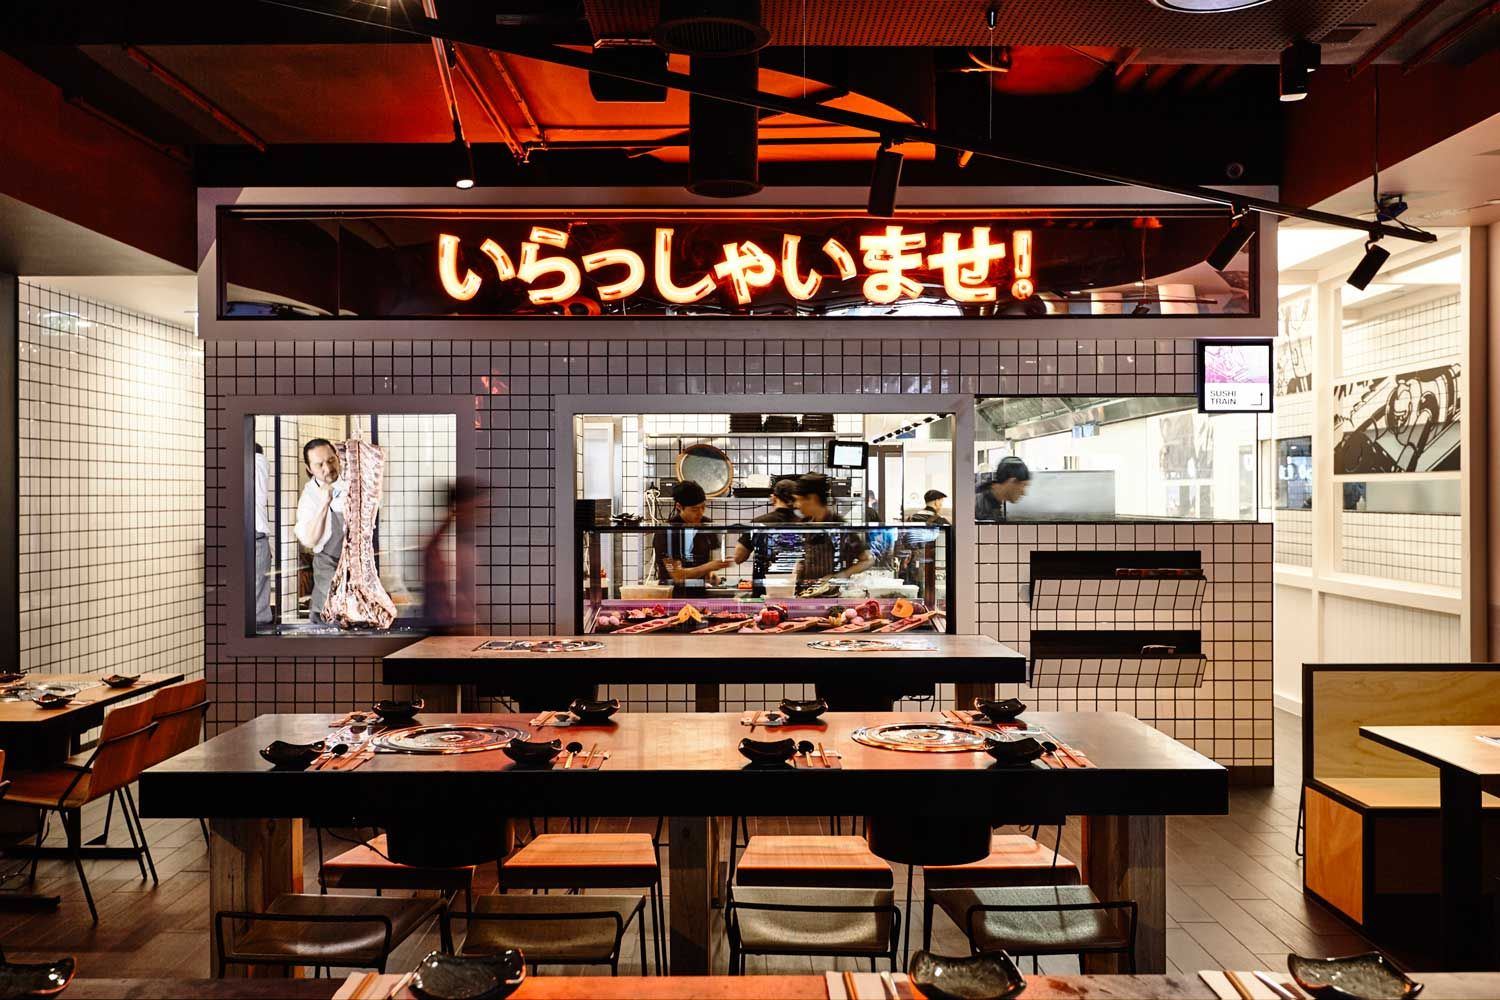 Tetsujin Anese Restaurant In Melbourne By Architects Eat Collaboration With Principle Design Embraces The Concept Of Order And Chaos